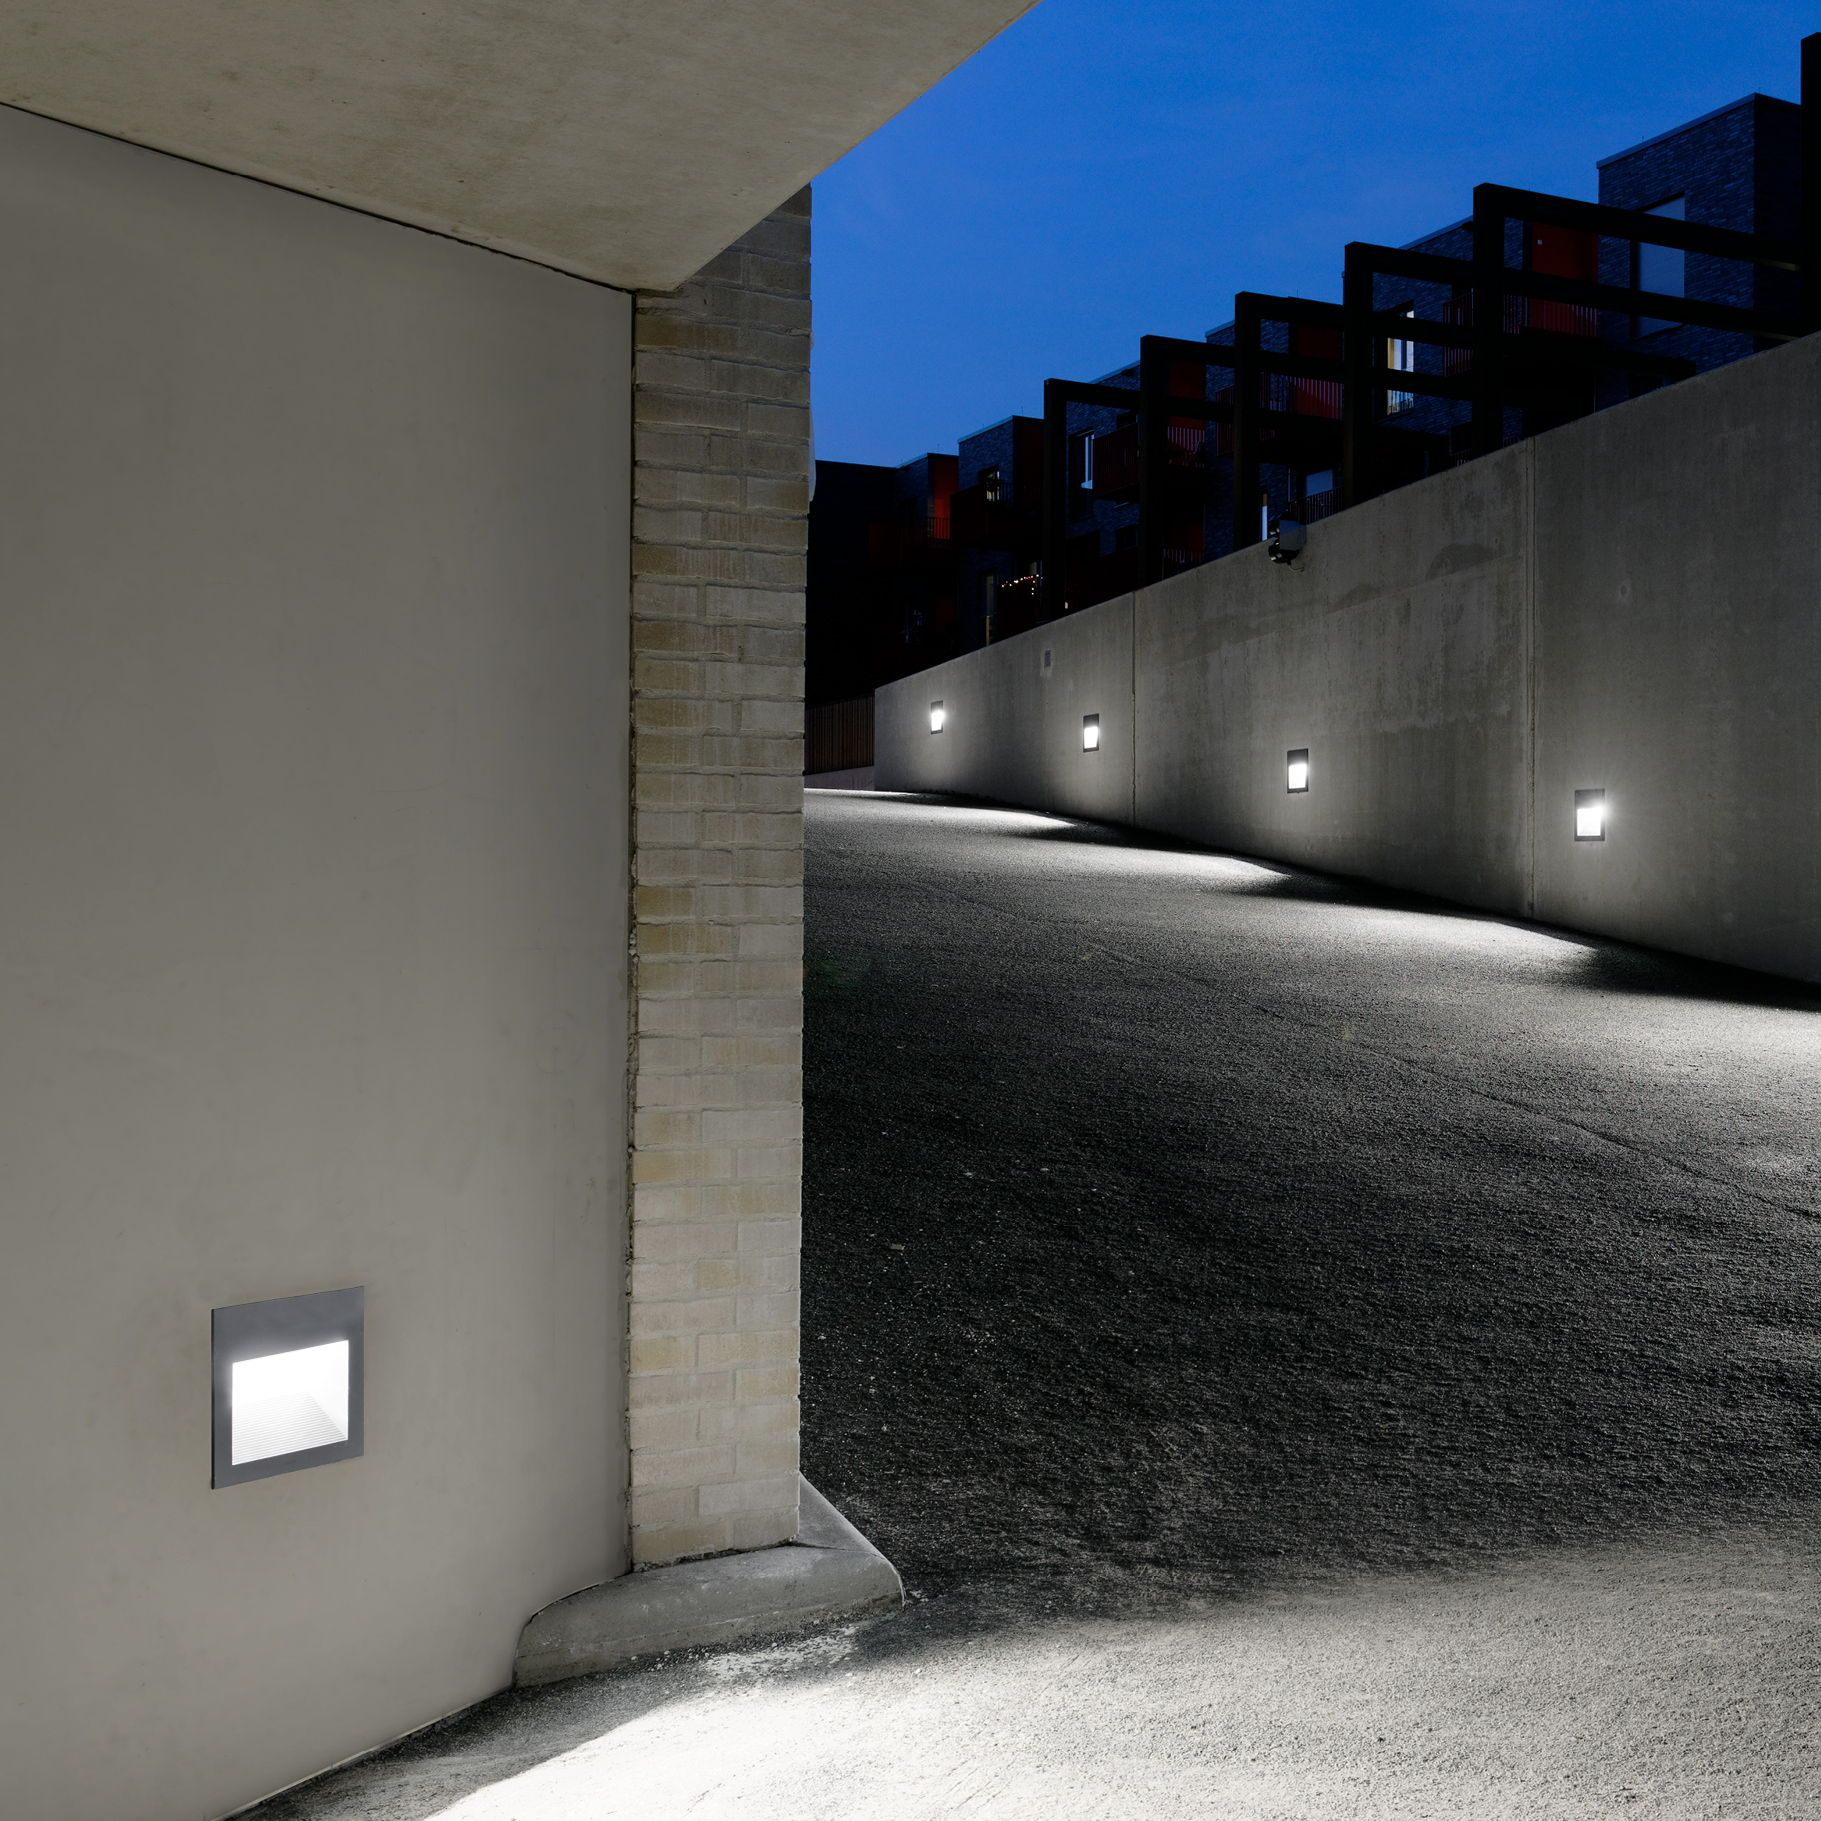 Bega Recessed Wall Luminaires 画像あり